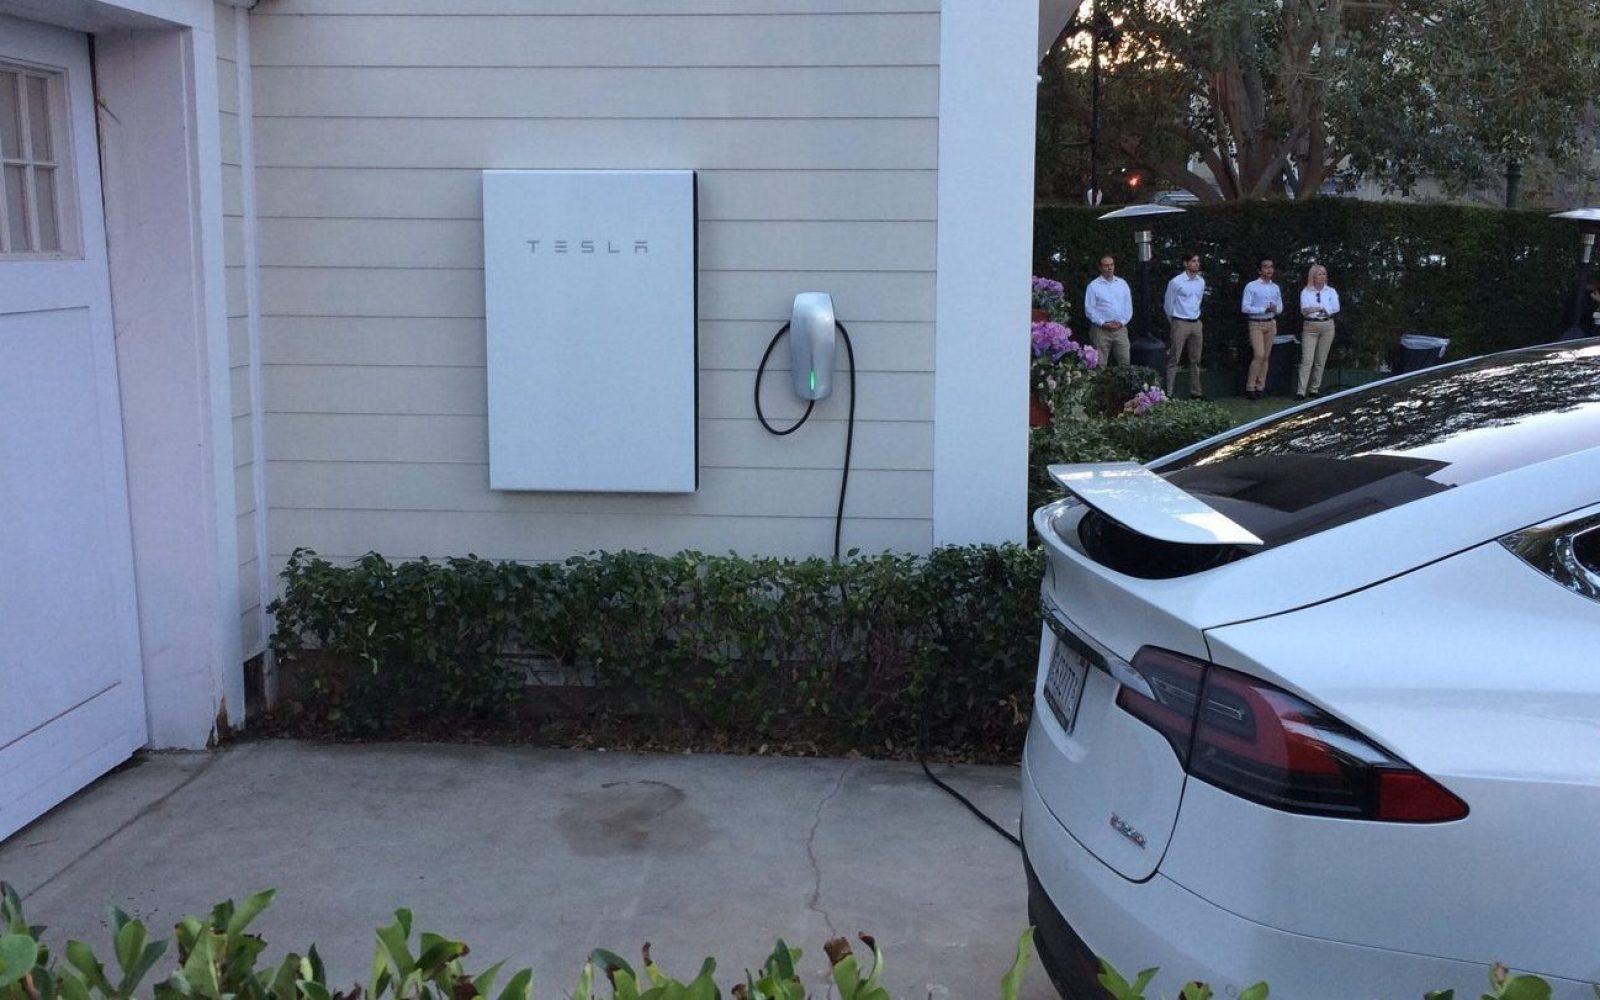 Tesla discontinues DC version of Powerwall 2 in Europe/APAC, only available in America and AC everywhere else